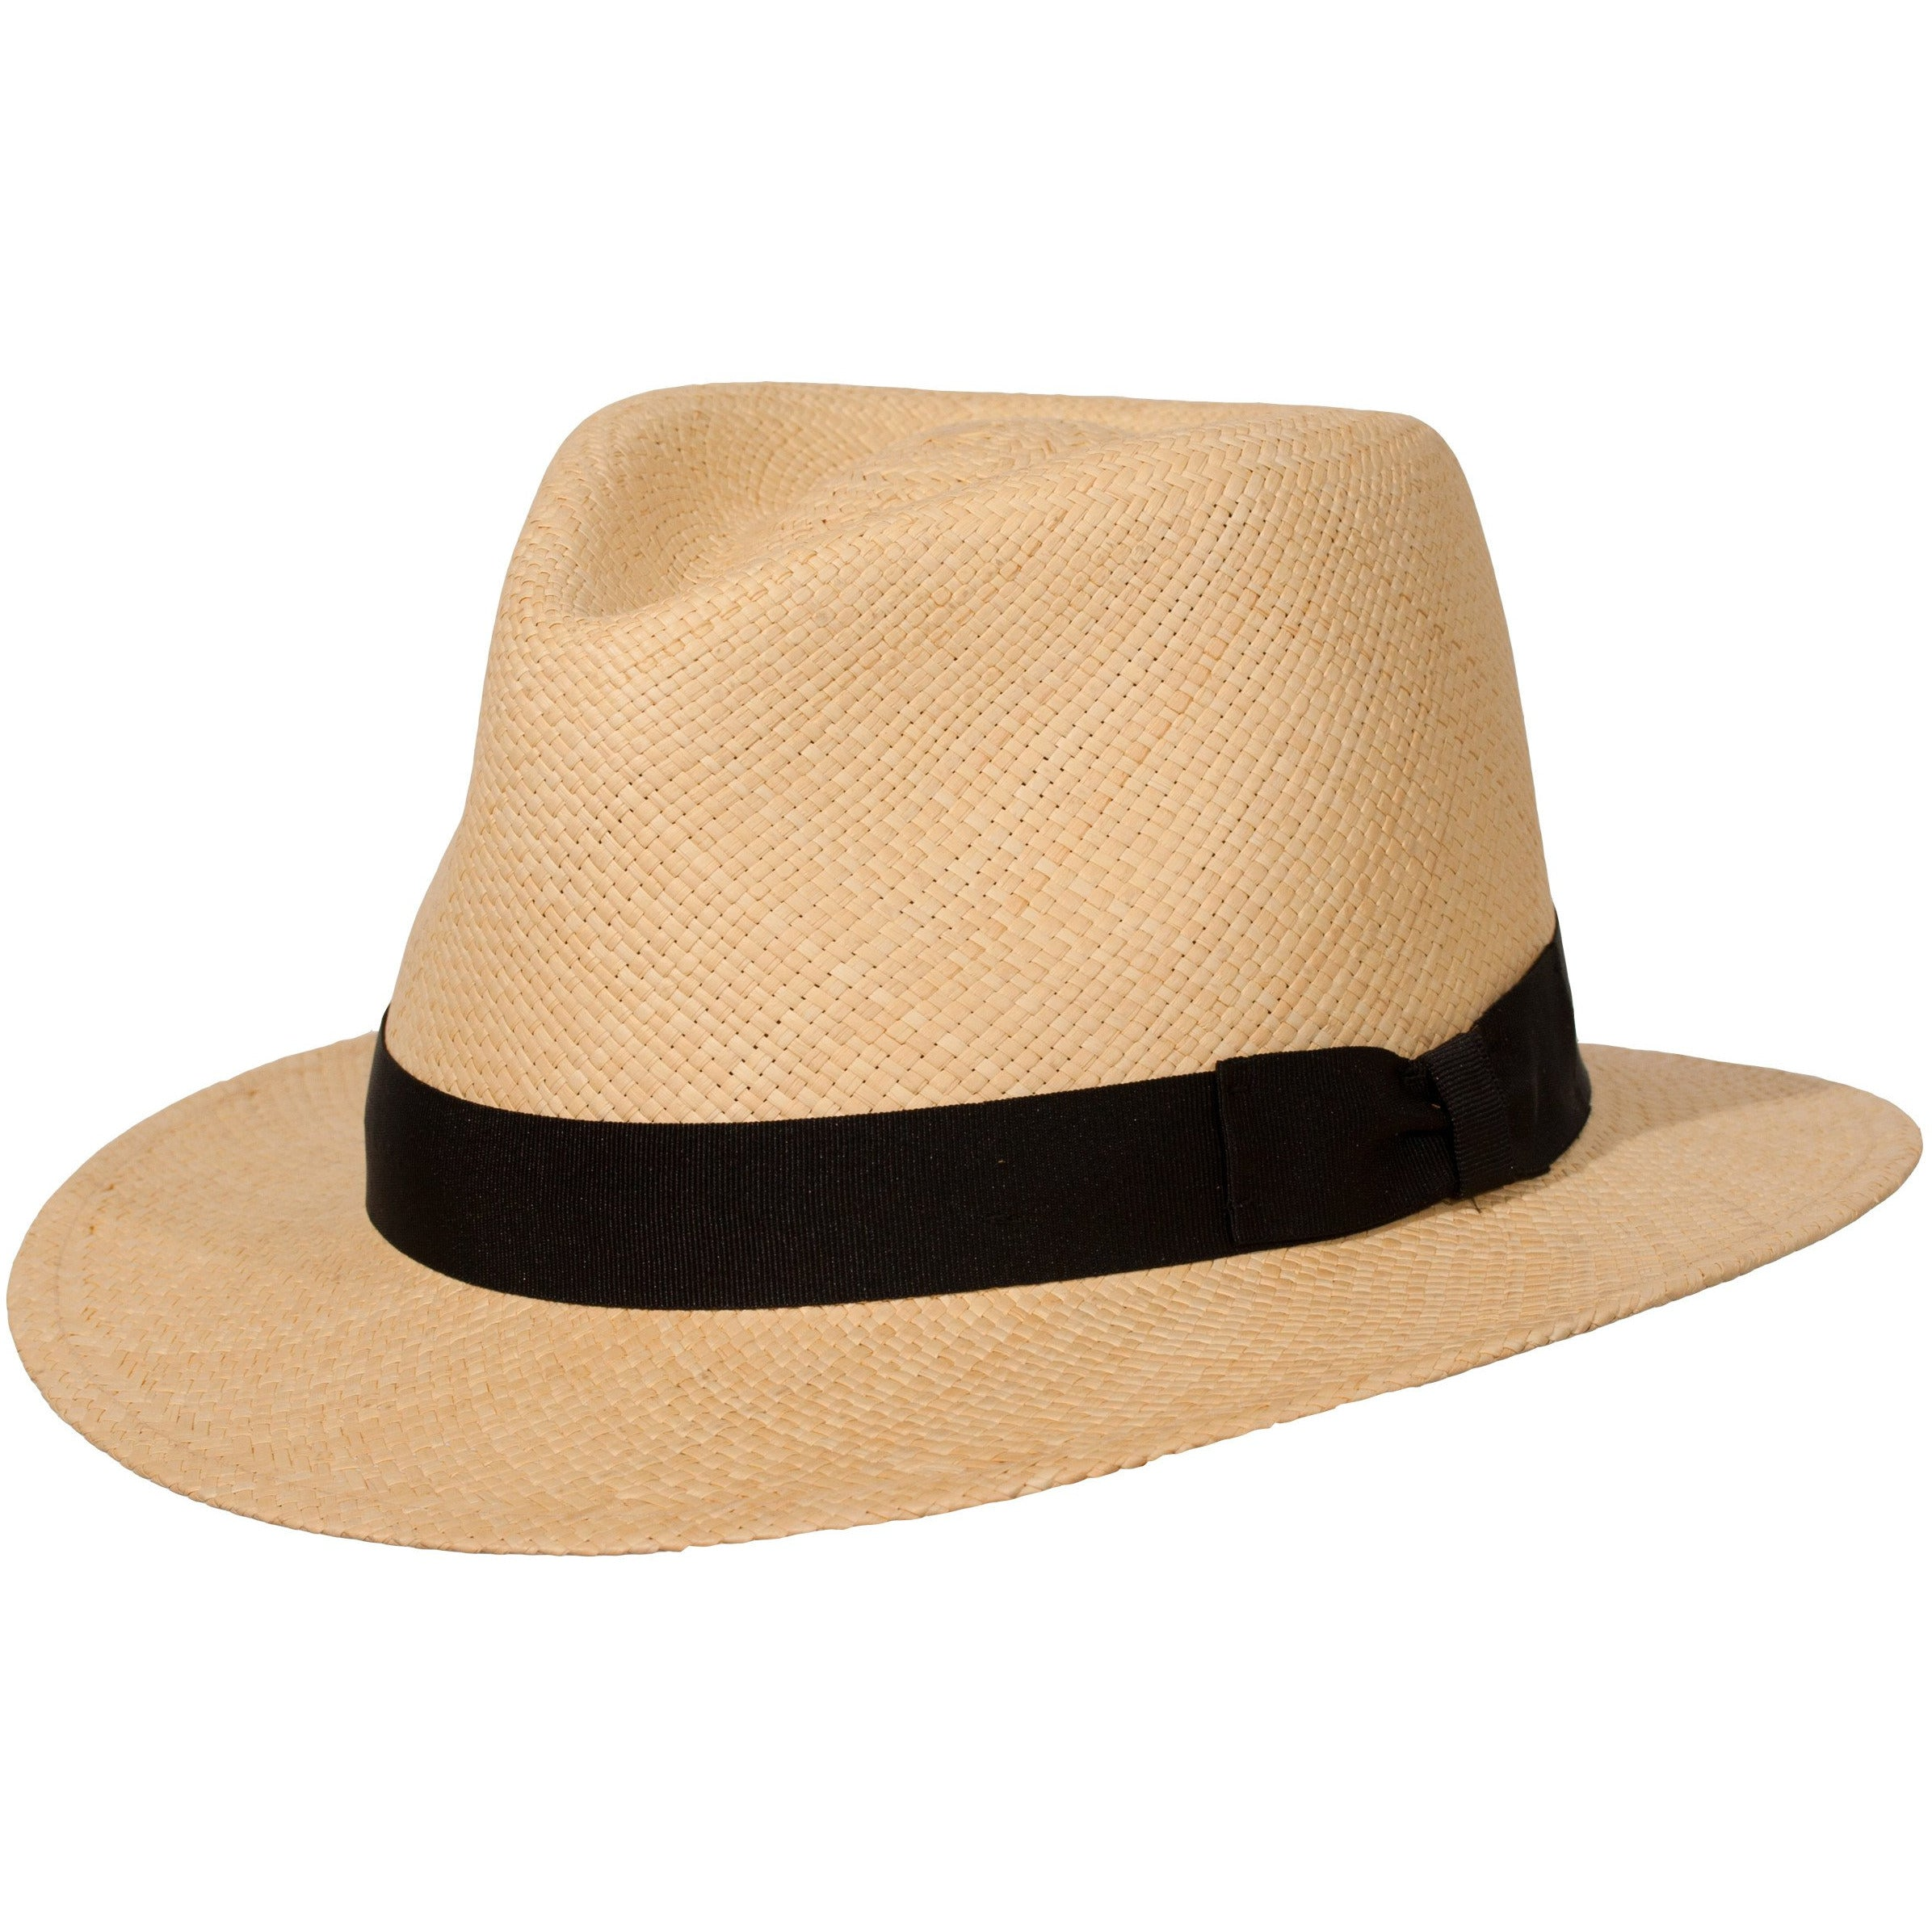 43034f8f38978 Weekender Authentic Panama Fedora by Levine Hat Co.